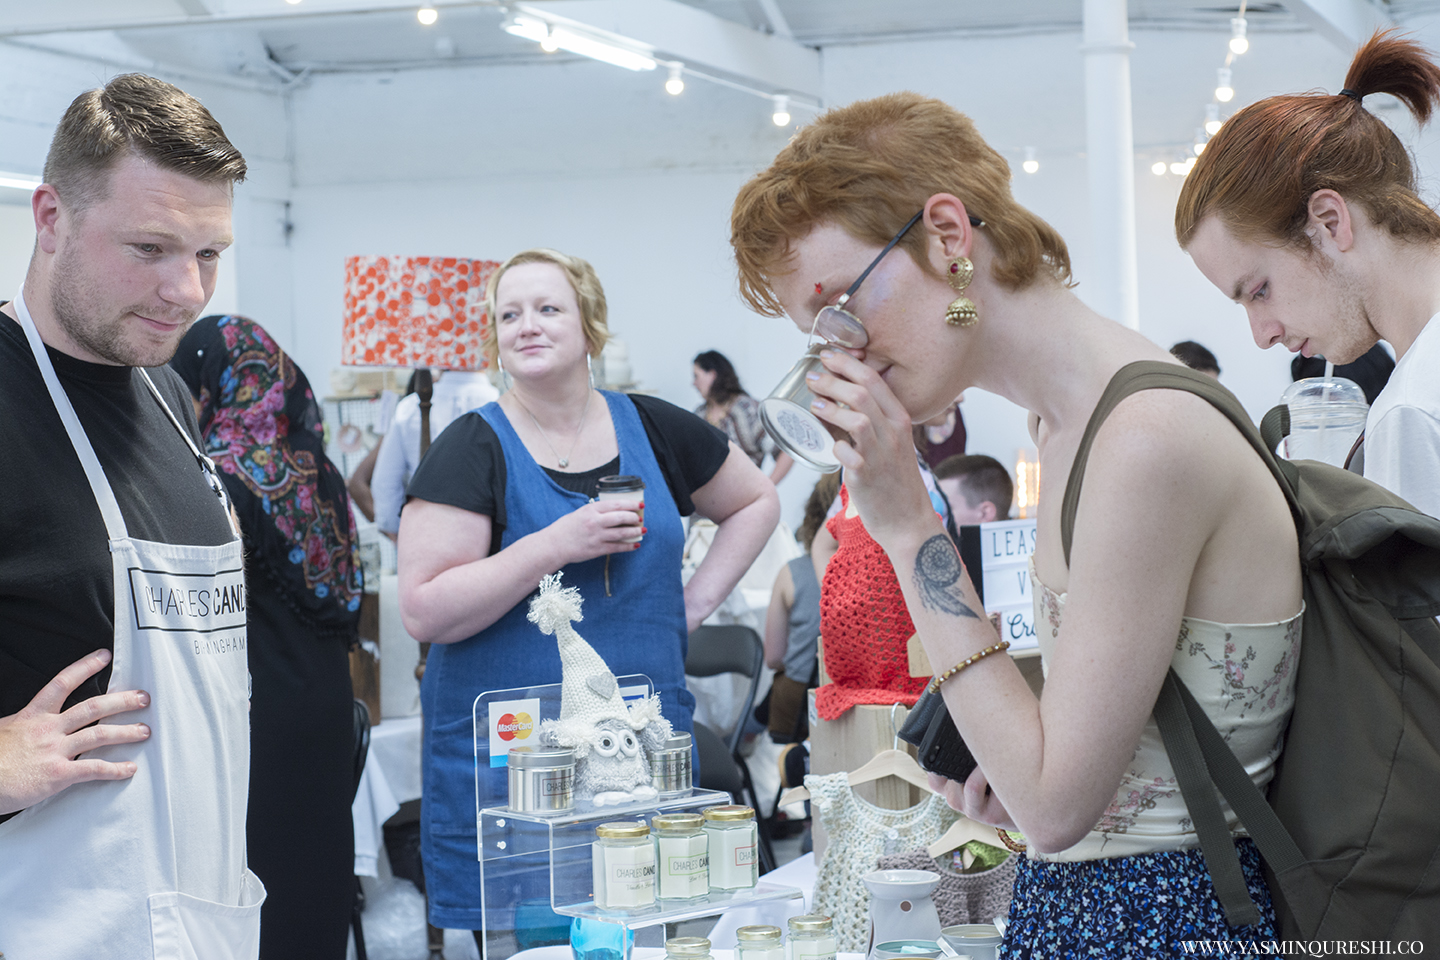 Charles Candles at the Paperdolls Handmade event. Photography by Yasmin Qureshi